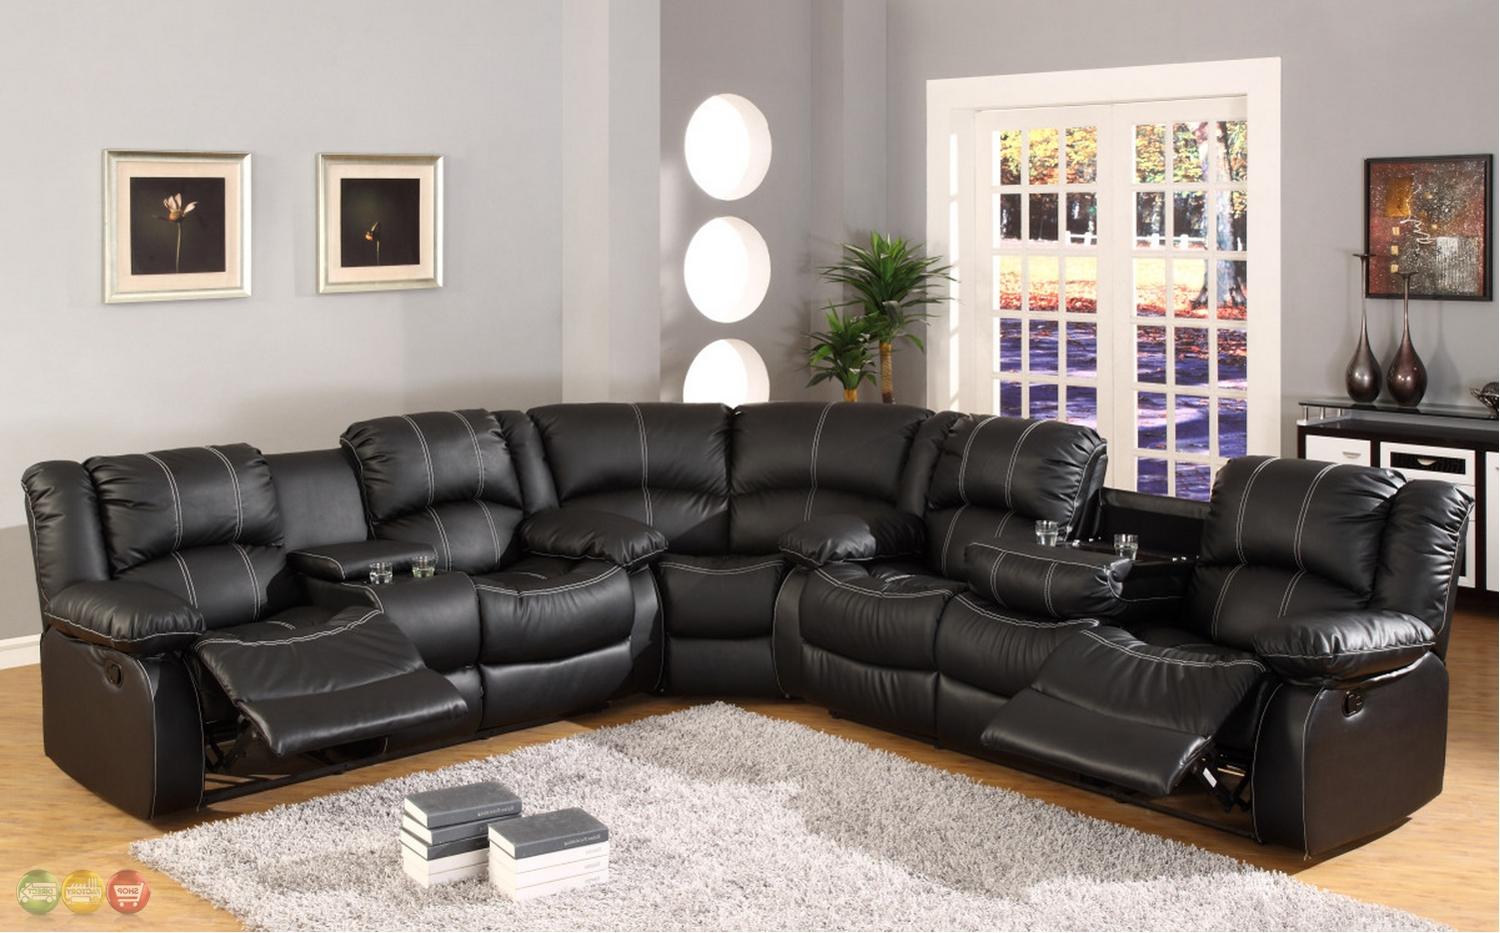 Most Recently Released Black Faux Leather Reclining Motion Sectional Sofa W/ Storage Regarding Sectional Sofas With Consoles (View 8 of 15)